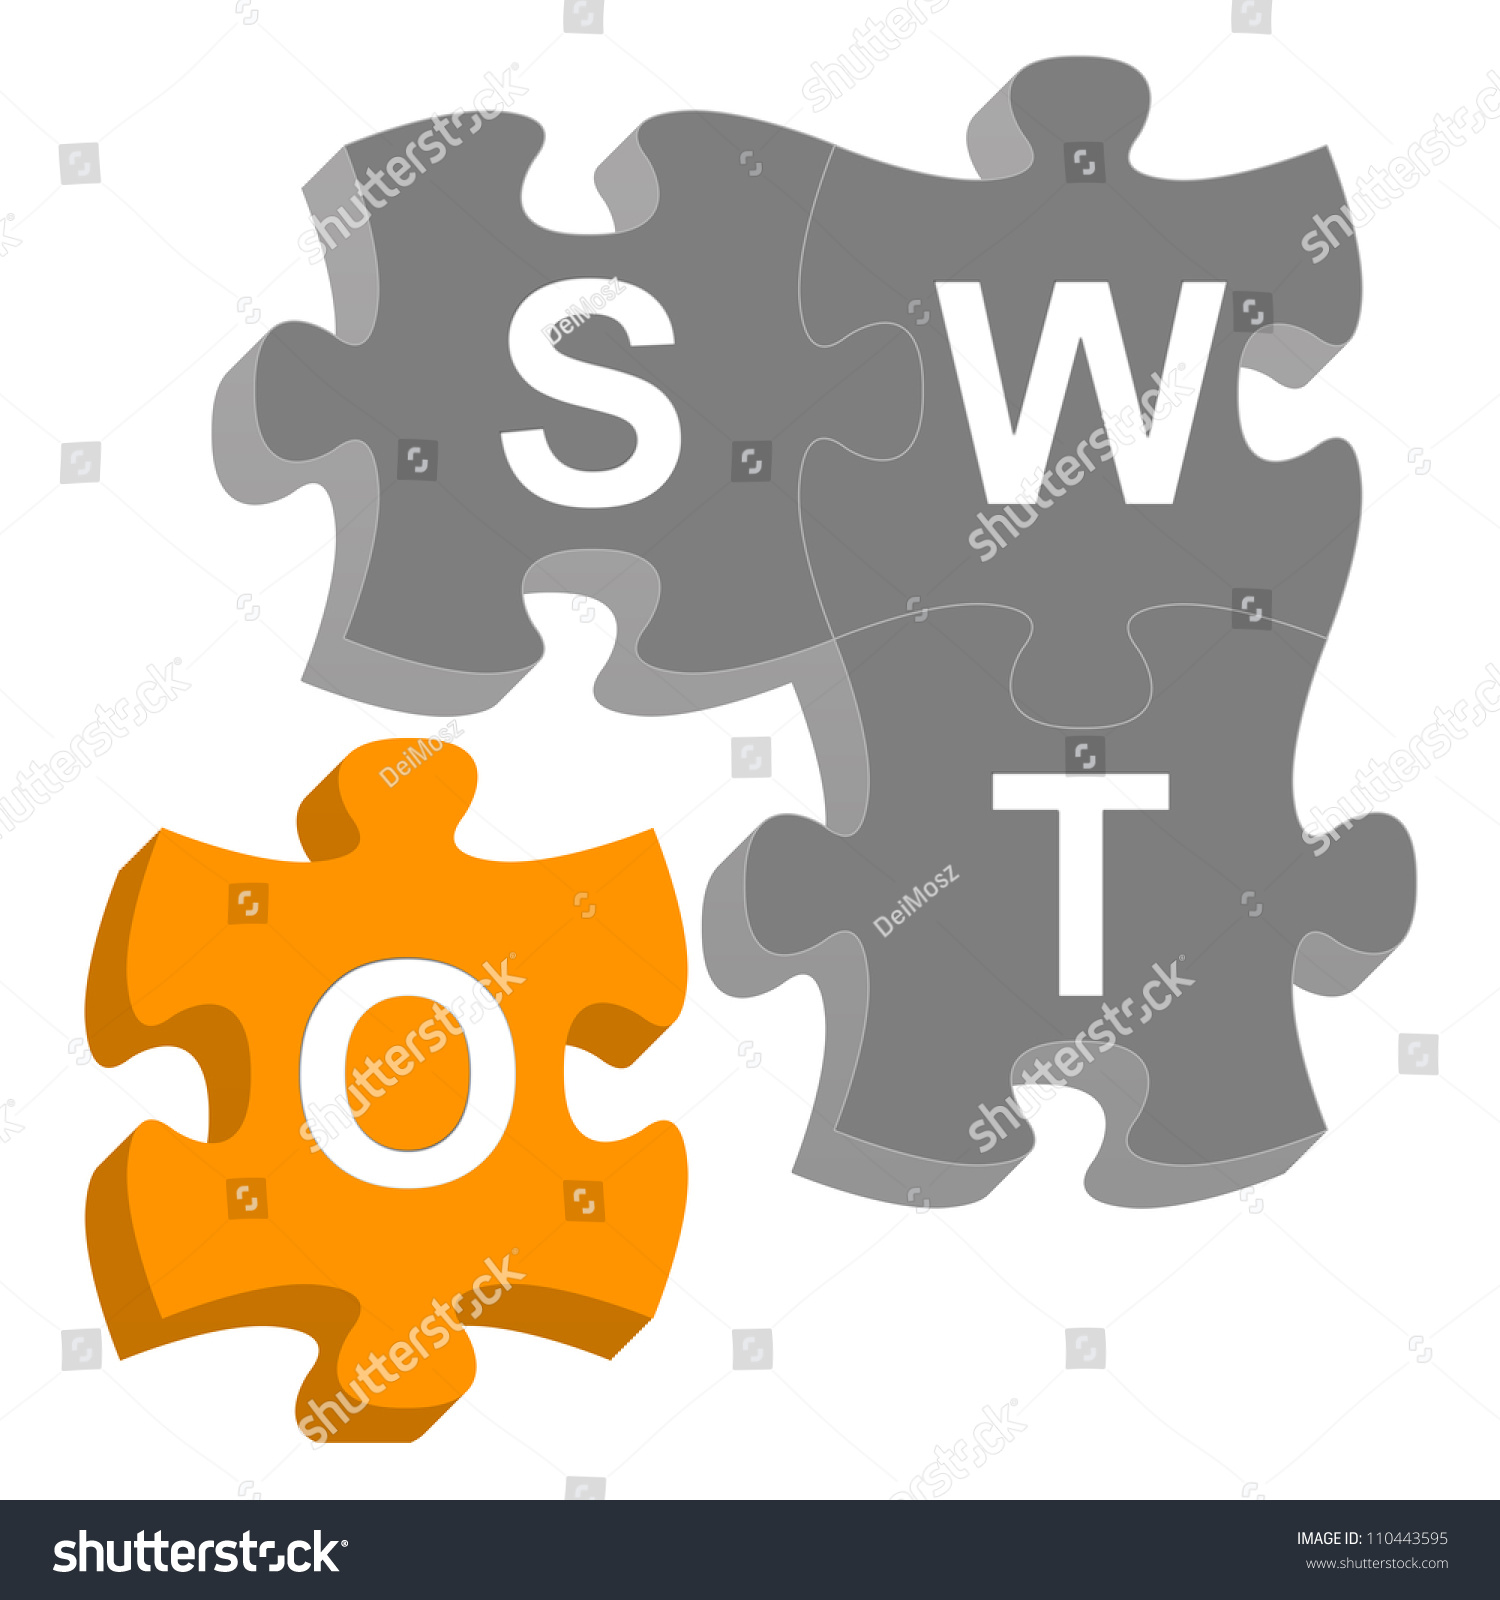 Missing Piece 3 D SWOT Puzzle Business Stock Illustration 110443595 ...